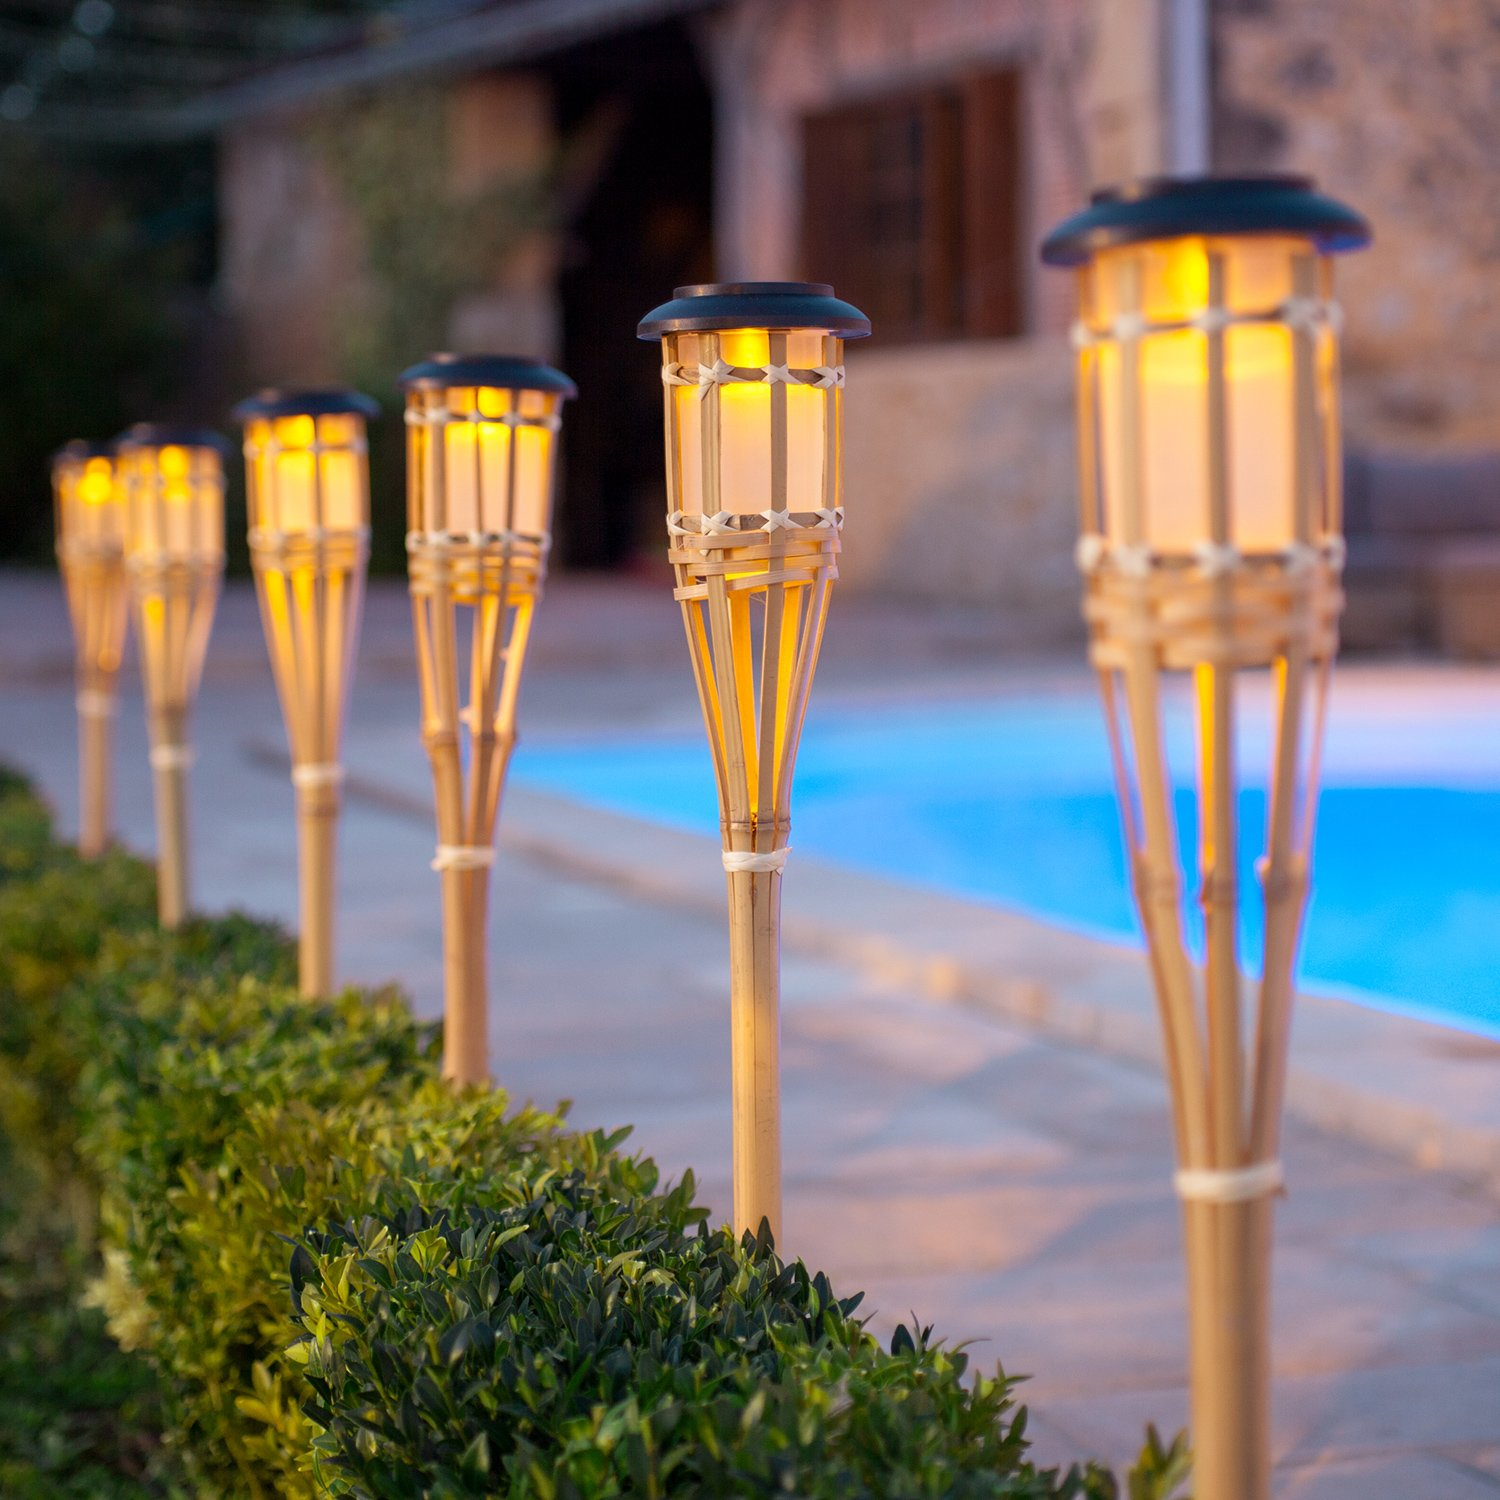 Superior Set Of 10 Large Solar Powered LED Bamboo Garden Torches By Lights4fun:  Amazon.co.uk: Garden U0026 Outdoors